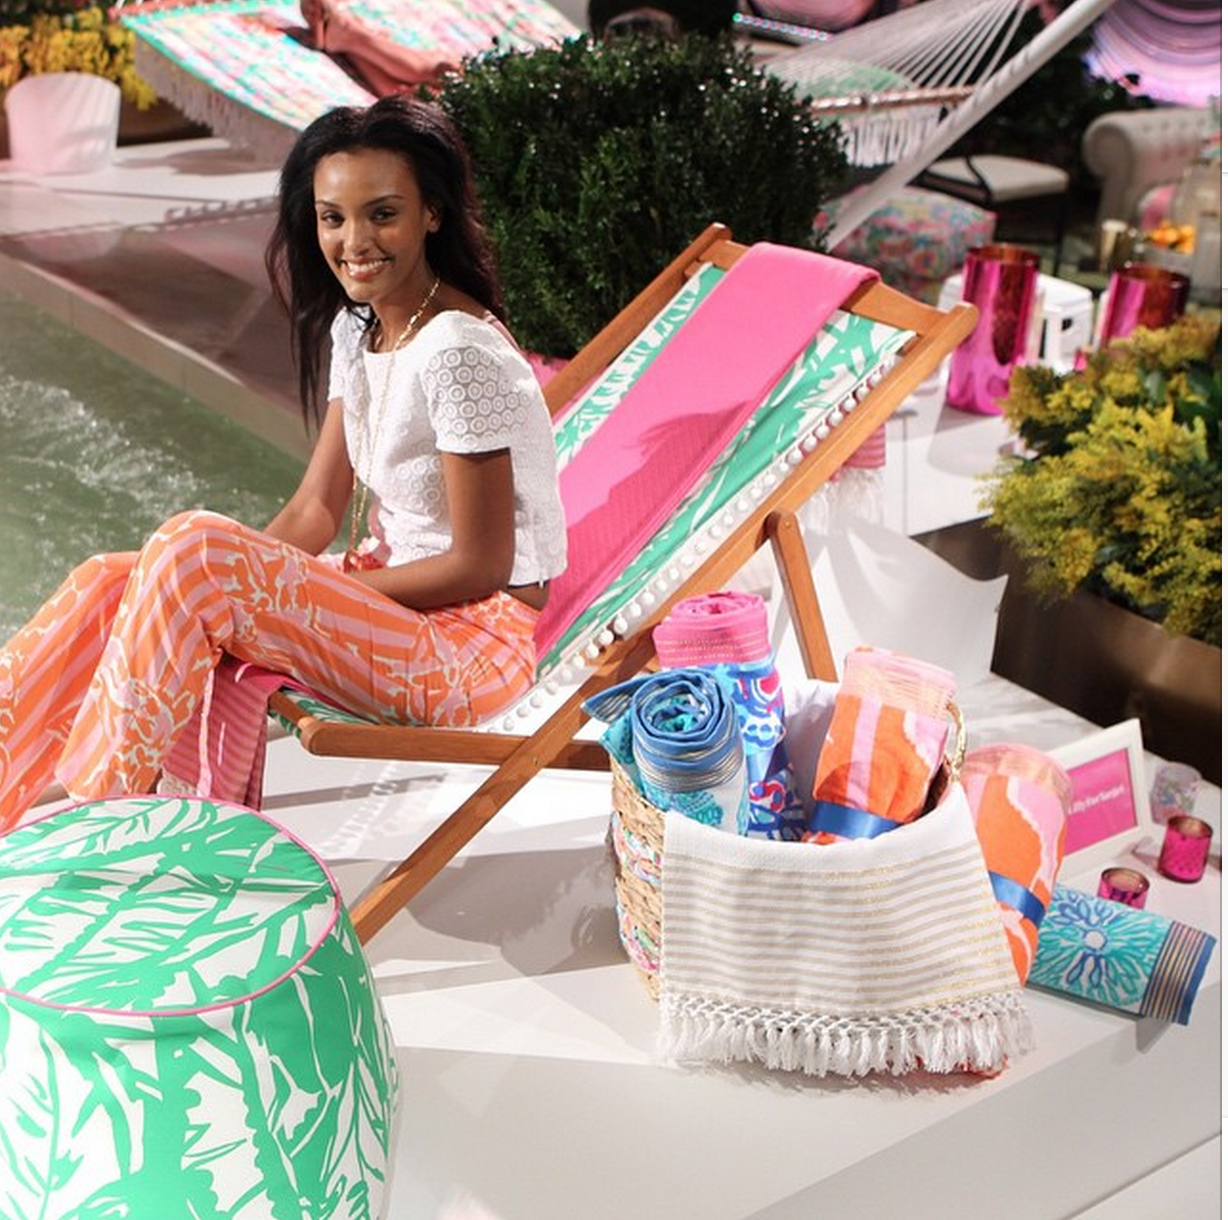 b00c324321 Why the Lilly Pulitzer and Target Collab Will Be Successful